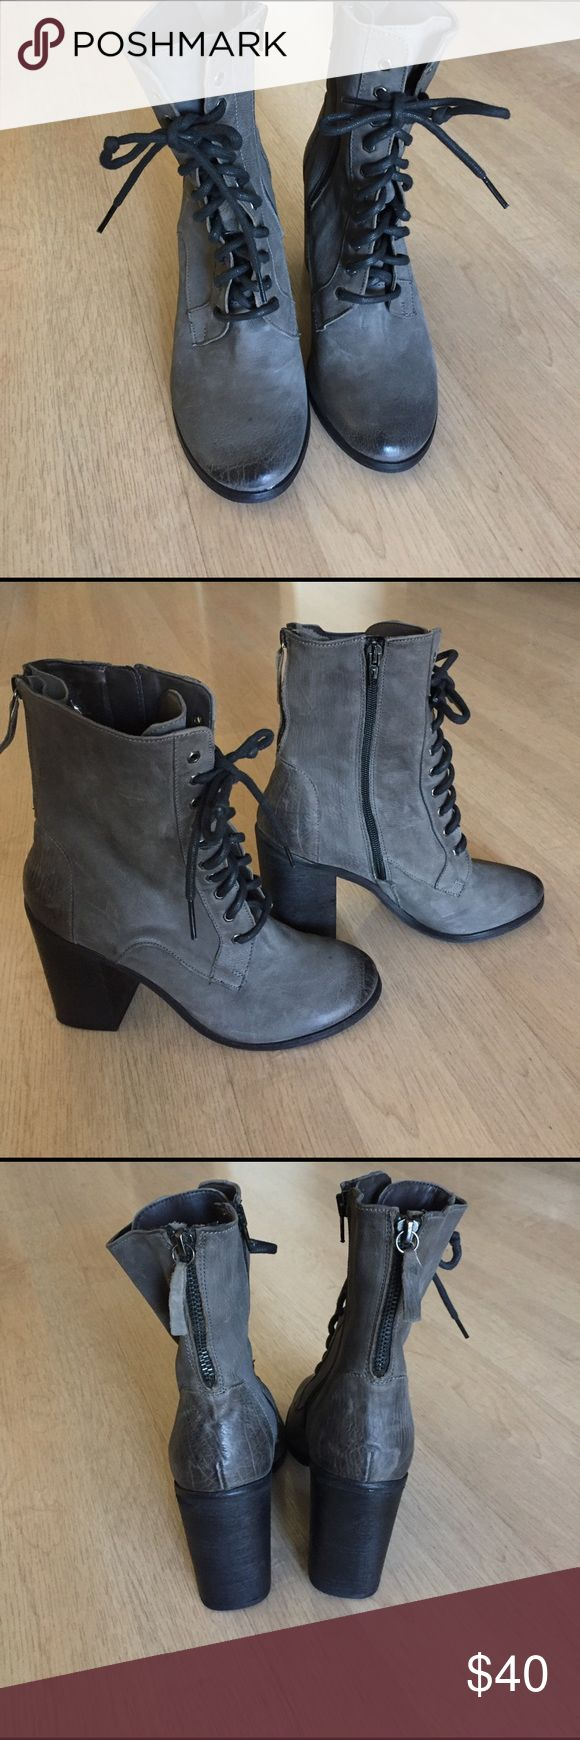 Boutique 9 grey leather boots Boutique 9 grey leather boots. New condition. Has zippers on the sides and the back.  Grey distressed leather 3 1/2 in heel Boutique 9 Shoes Ankle Boots & Booties